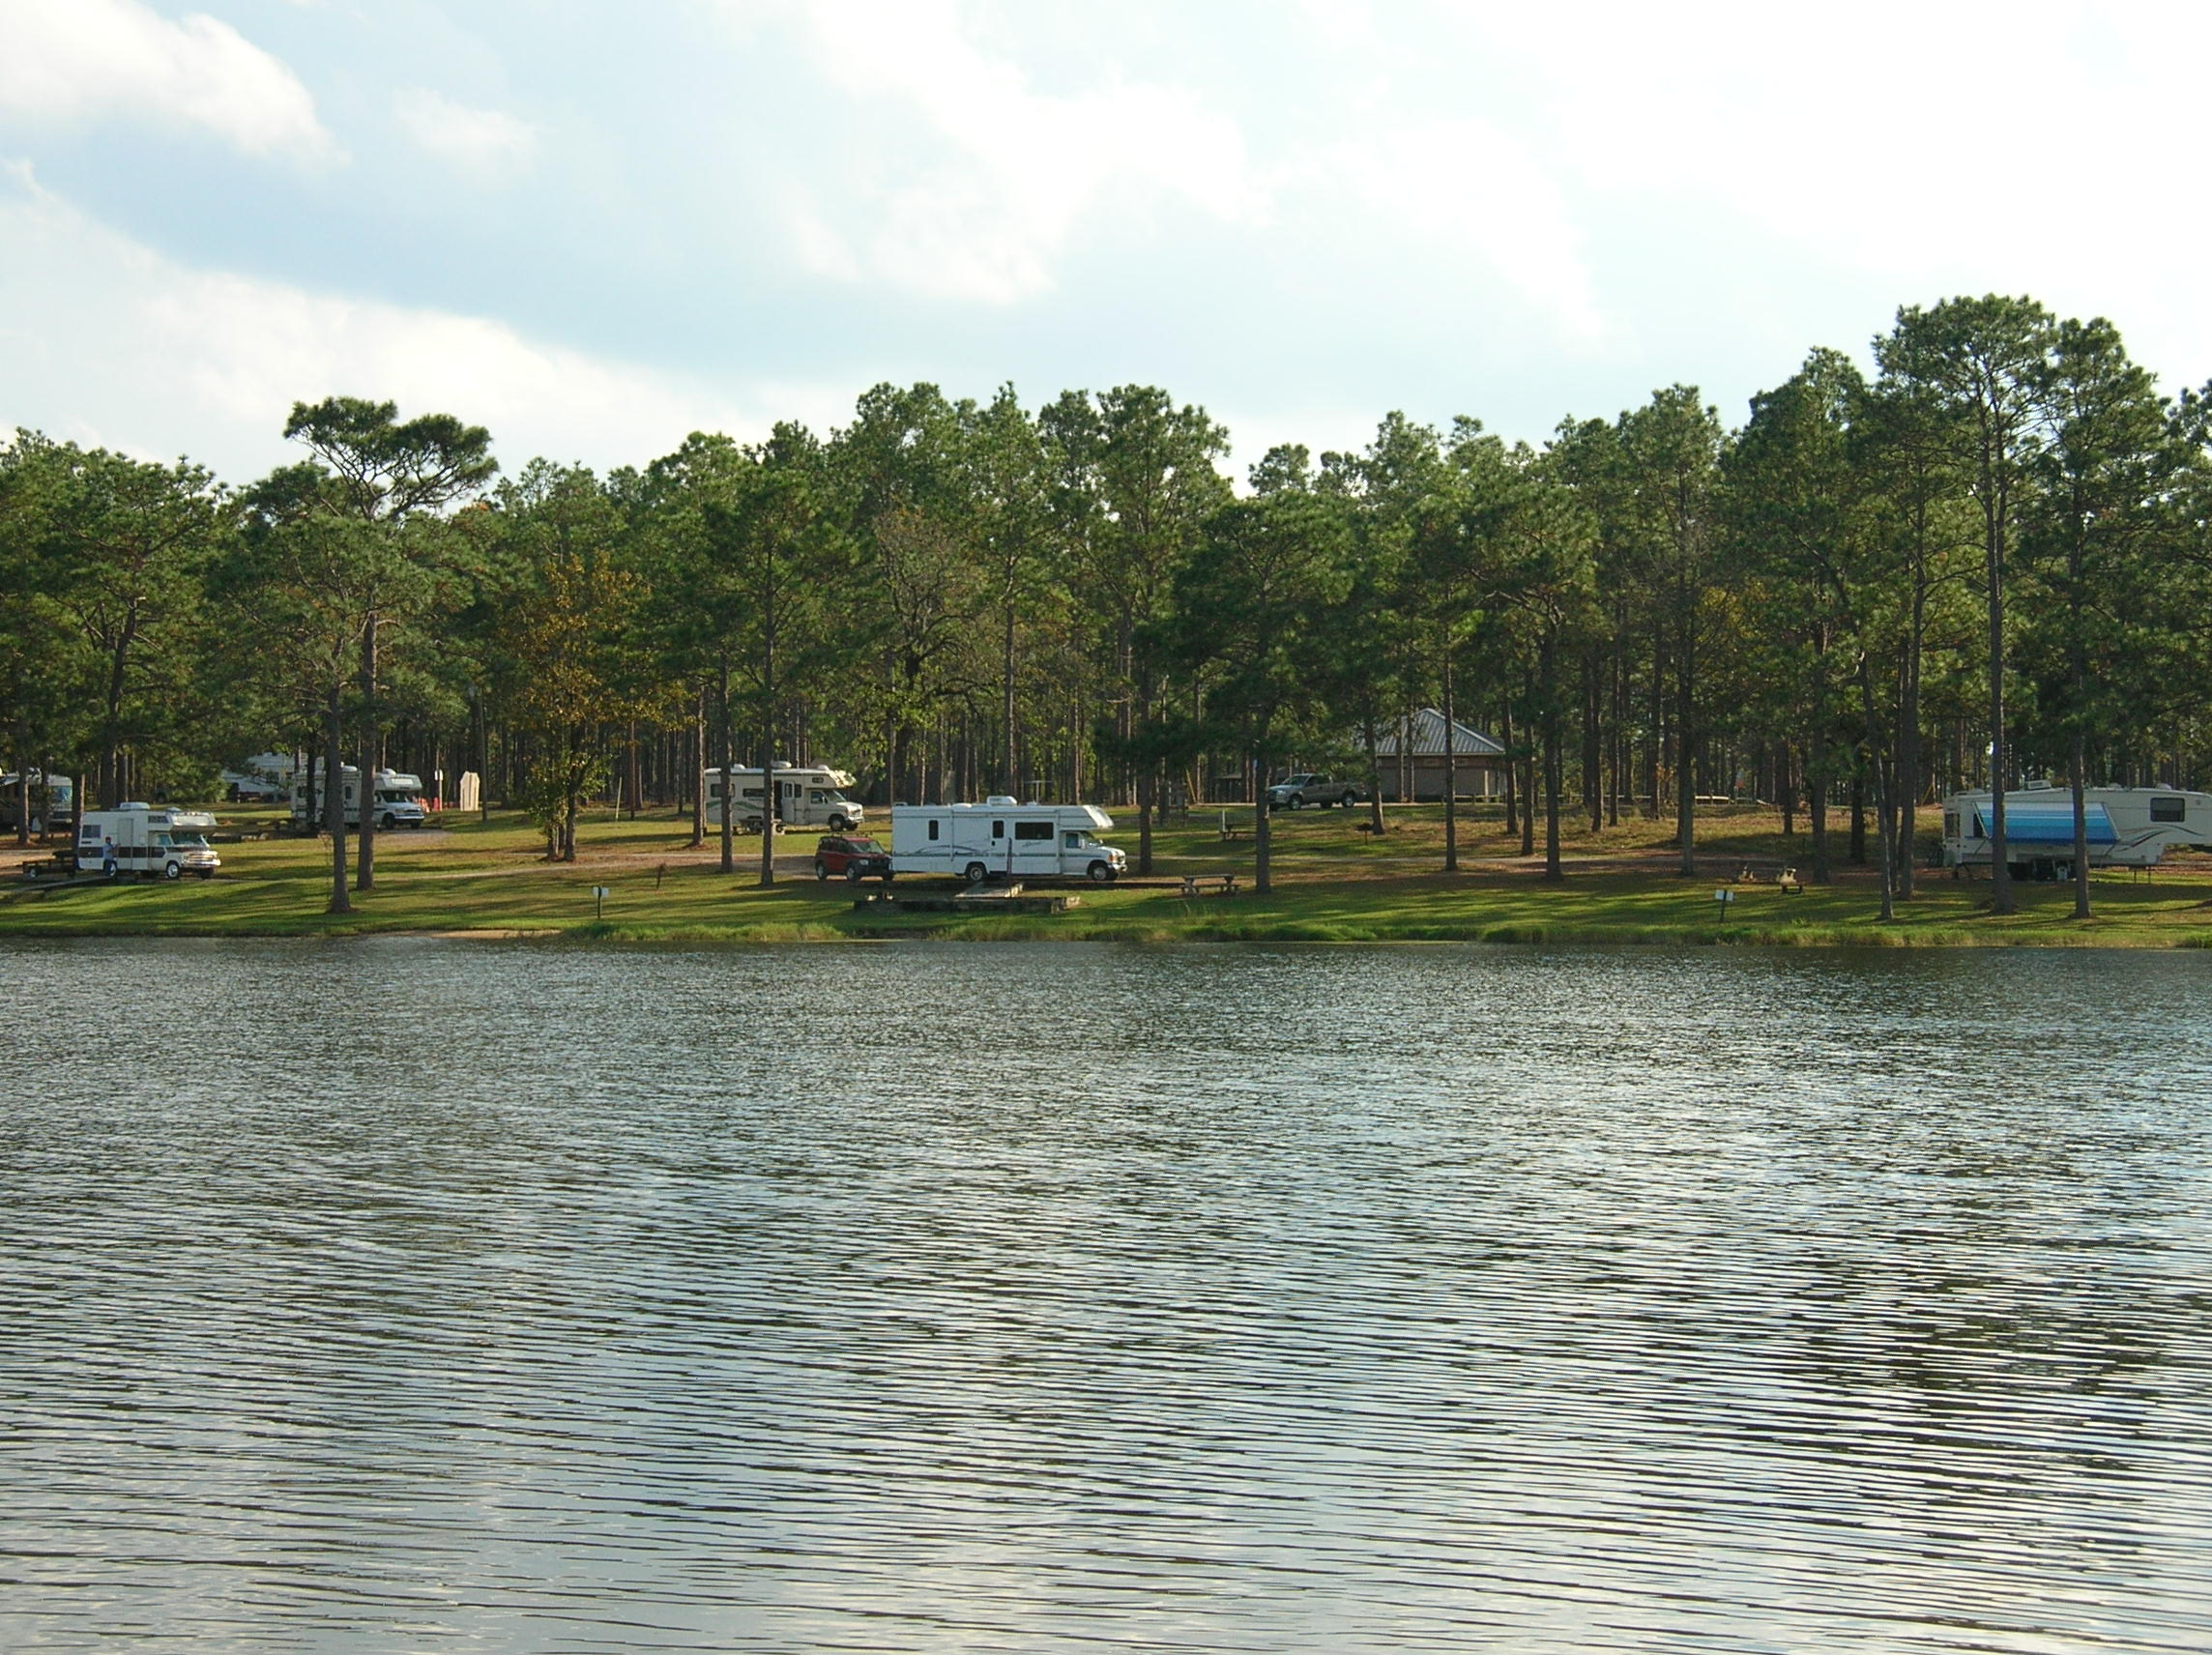 Our Campsite from the Lake